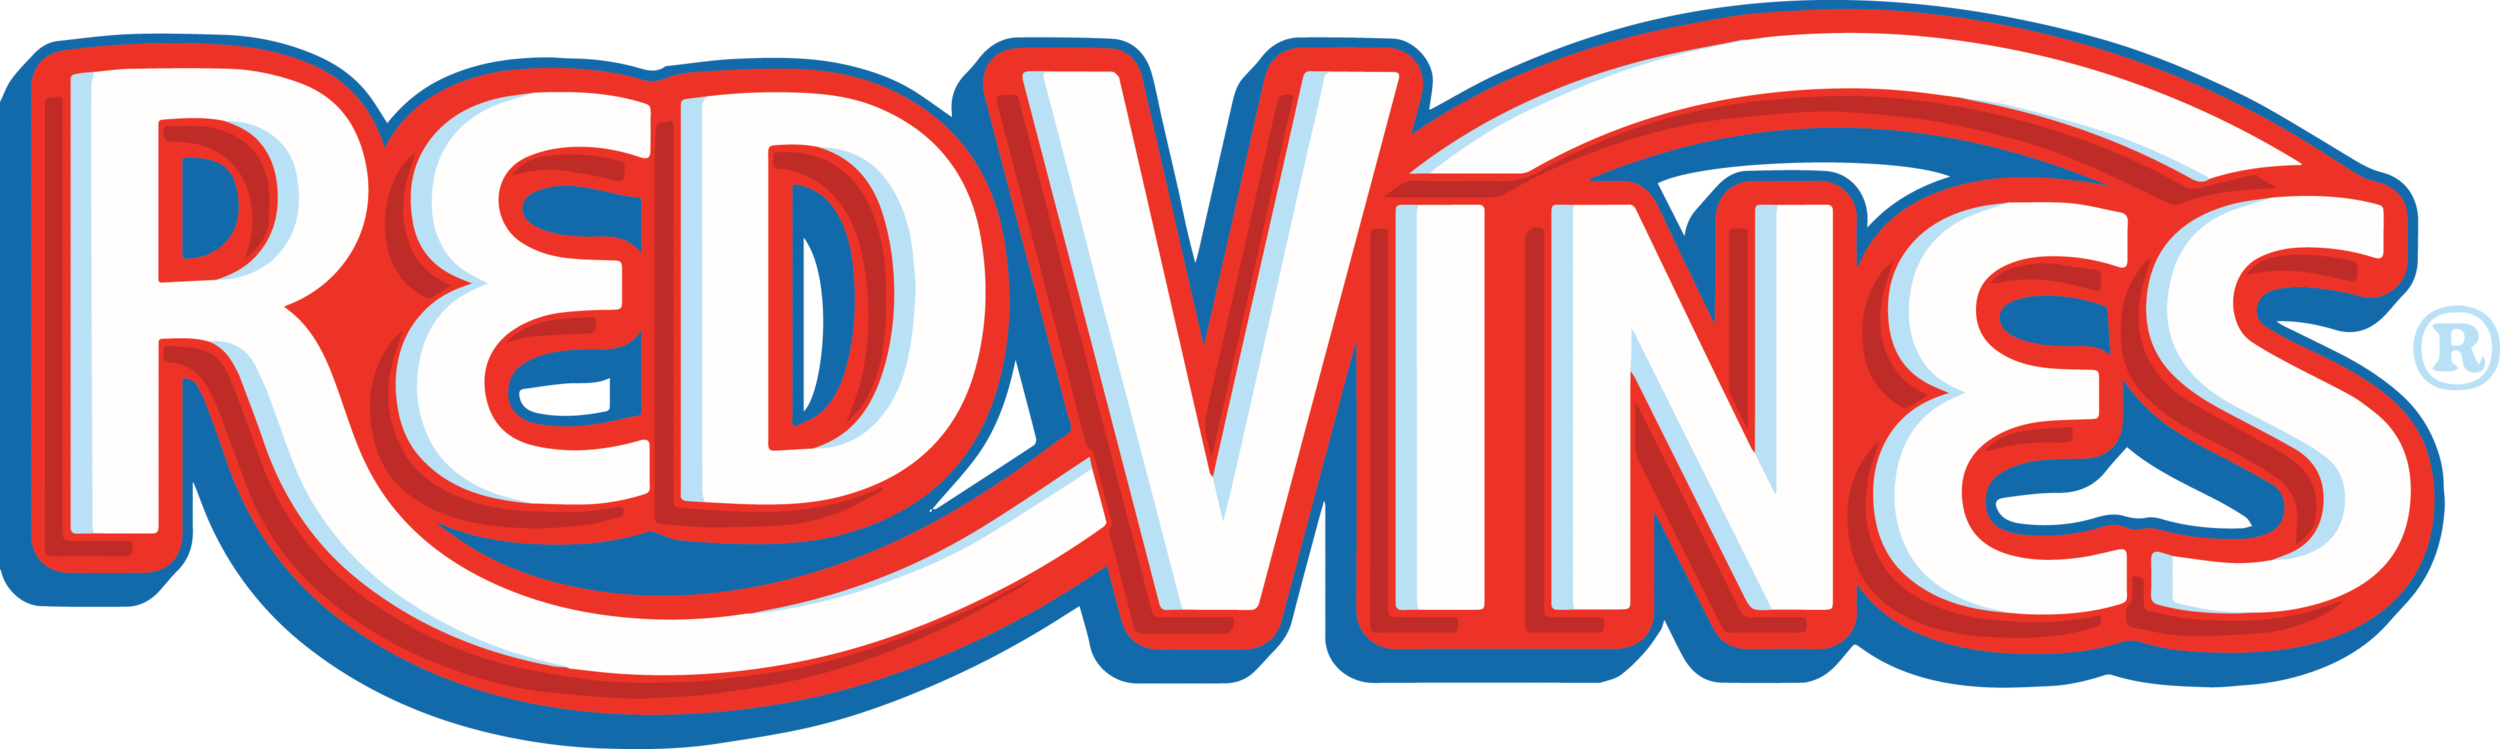 RedVines Logo.png